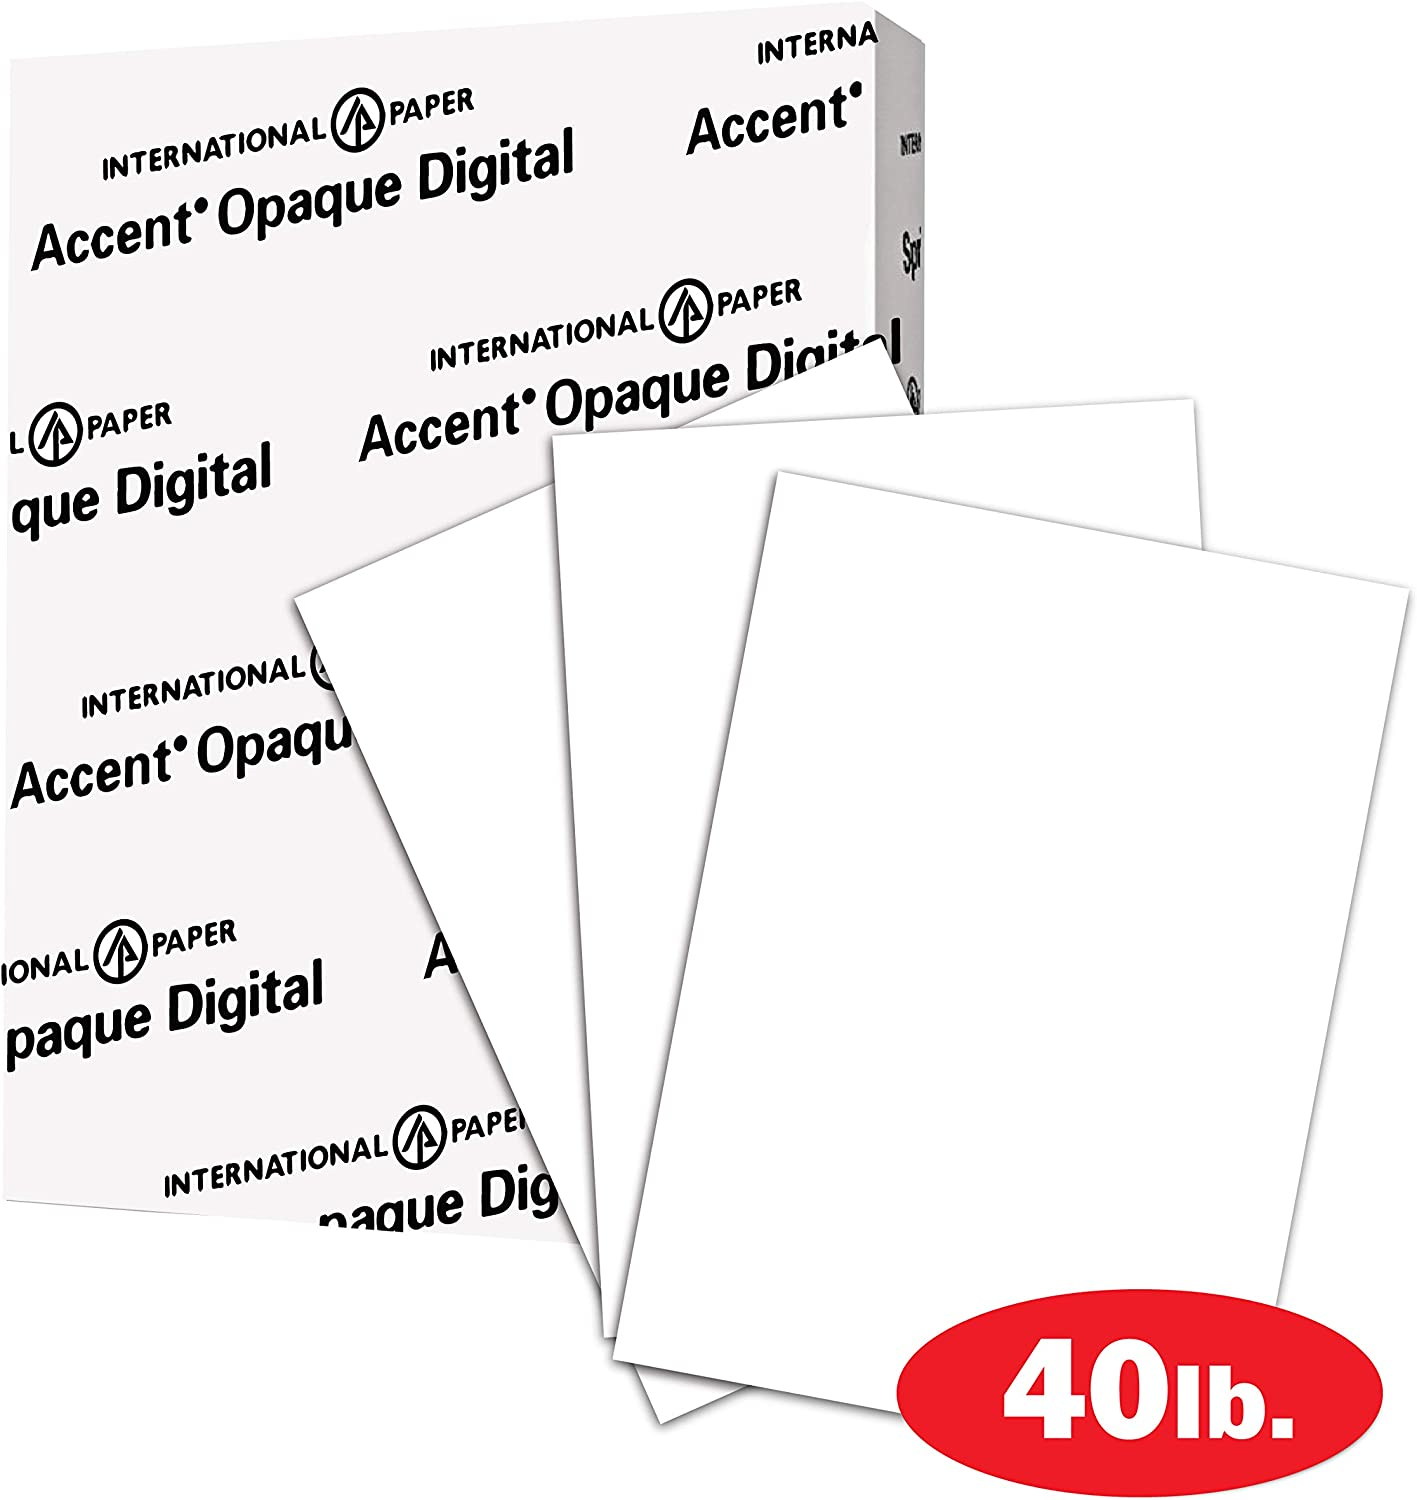 Accent Opaque Printer Paper, White Paper, 40lb Copy Paper, 11x17 Paper, 1 Ream / 250 Sheets - Smooth Finish (188081R)